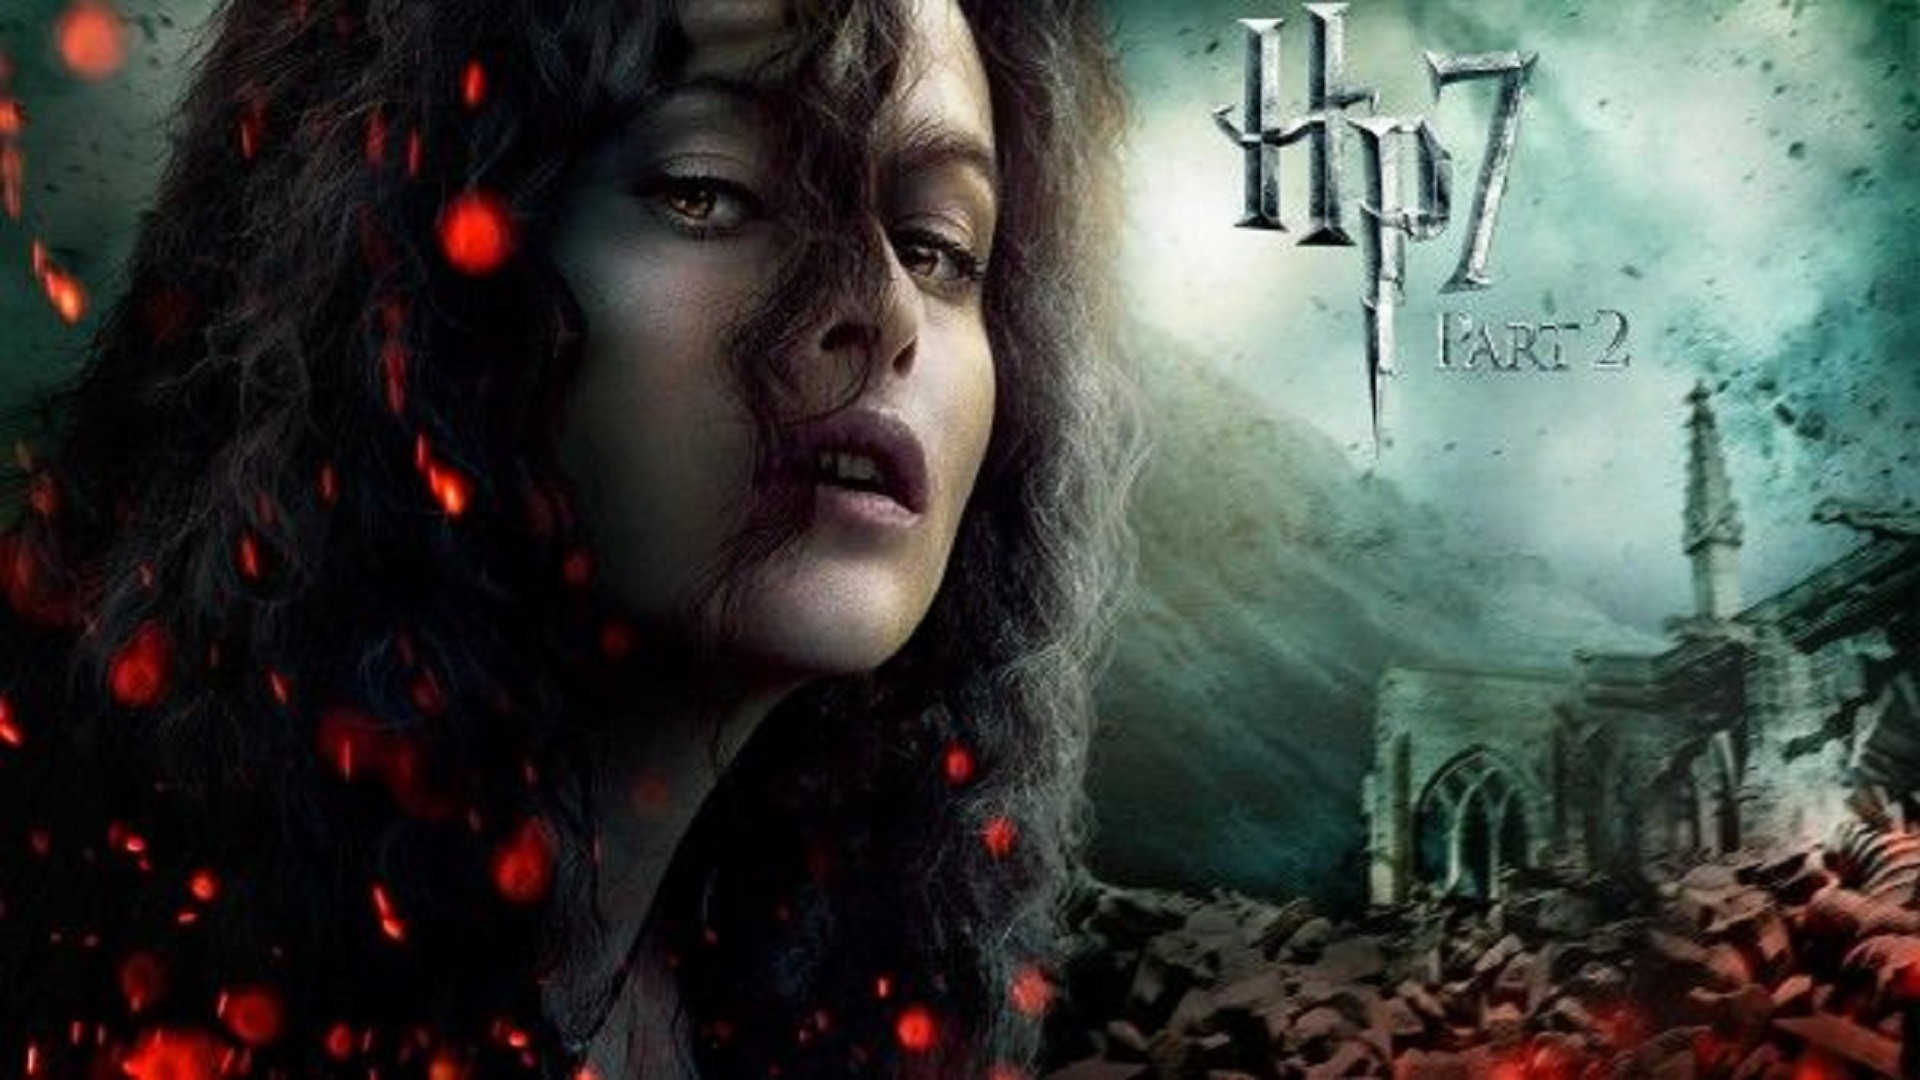 hd free wallpapers harry potter free download